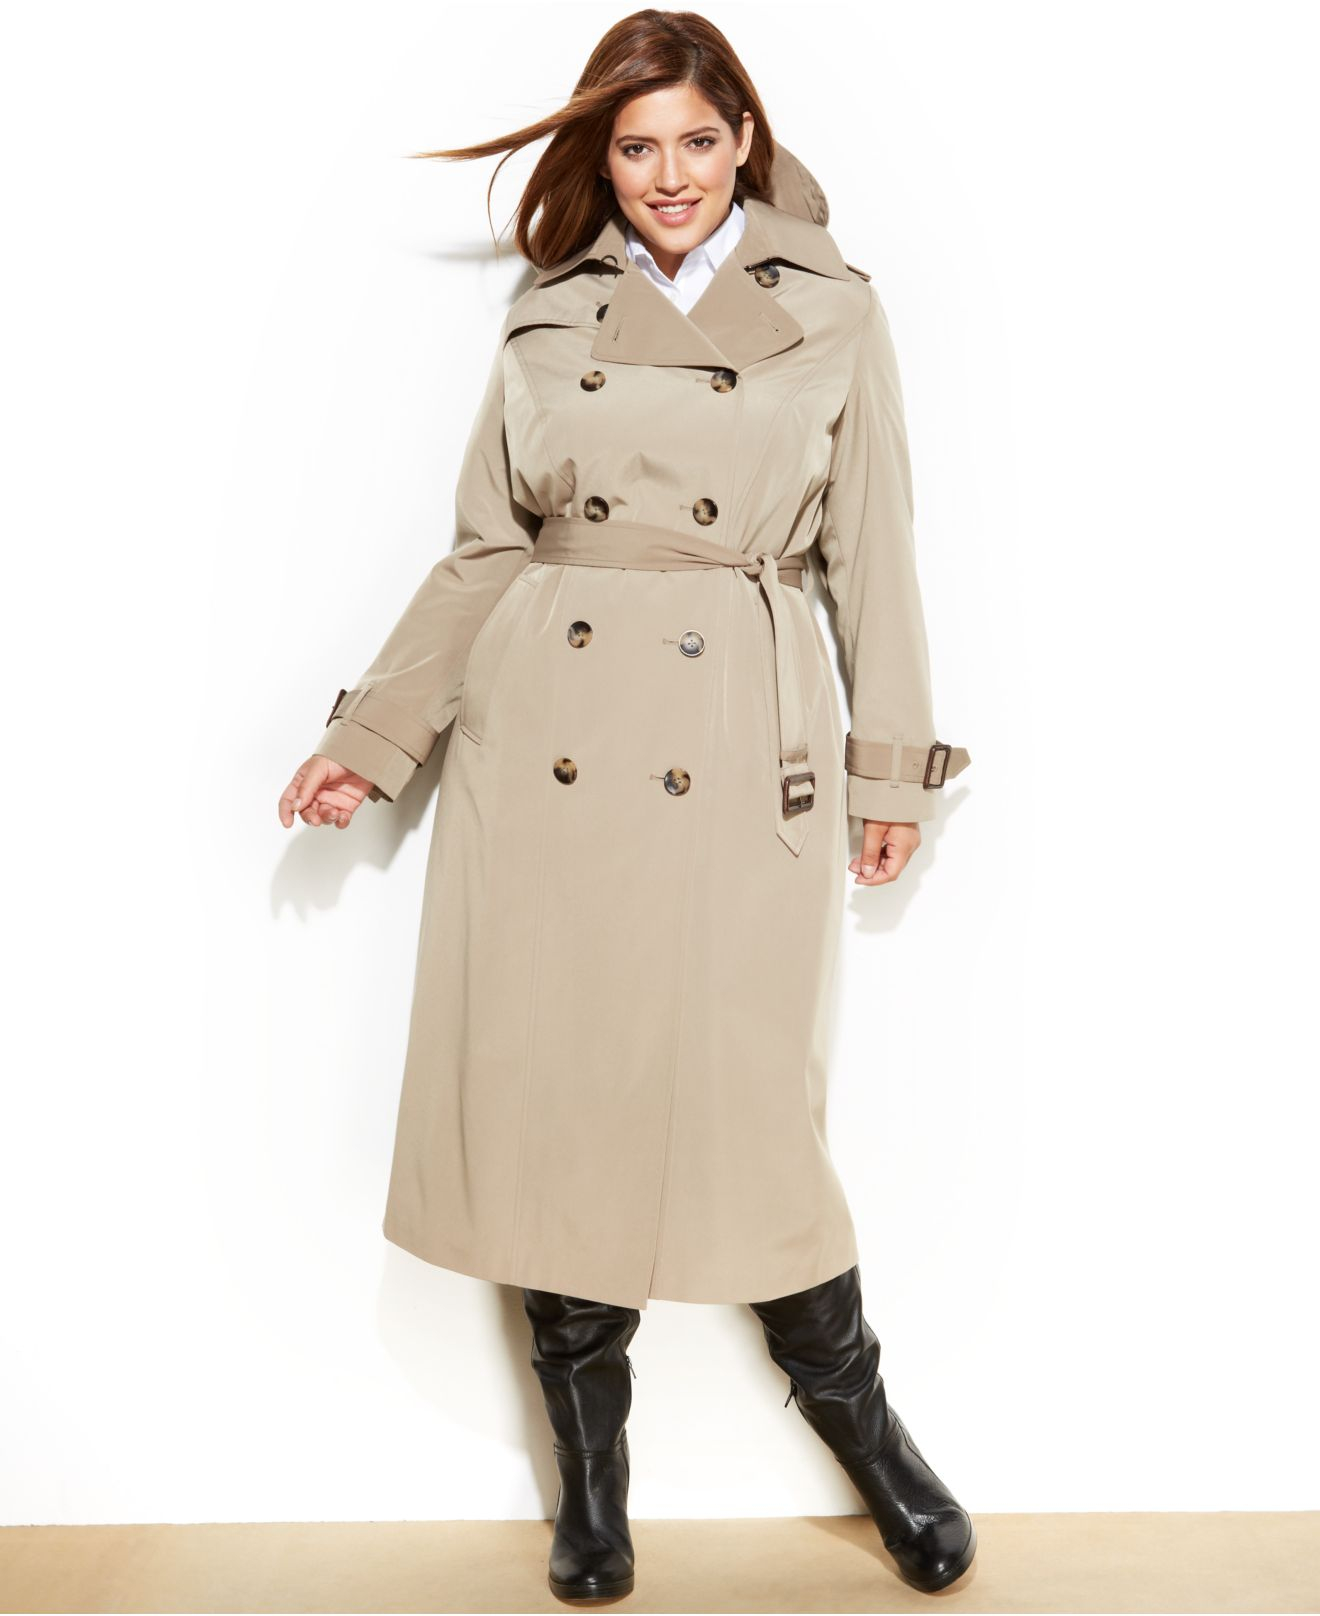 low cost latest design multiple colors London Fog Women S Trench Coat Plus Size - Tradingbasis